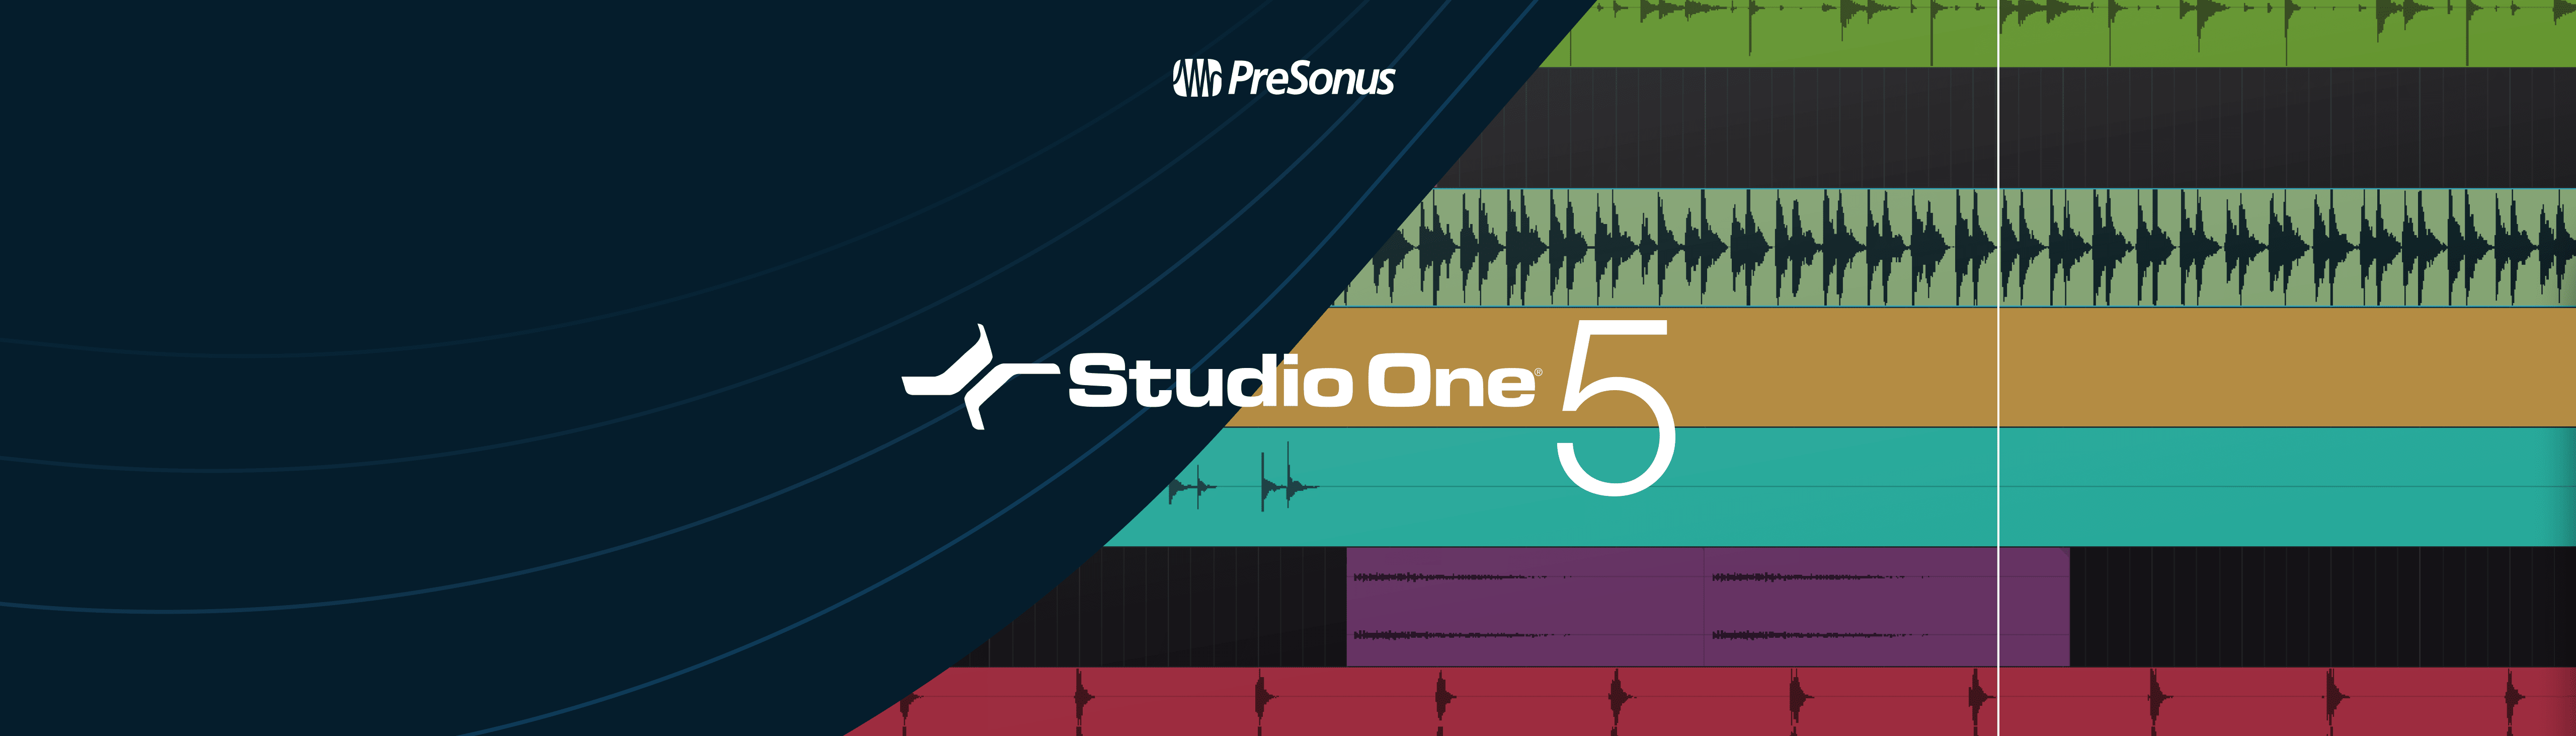 PreSonus Studio One Professional Rent-to-Own